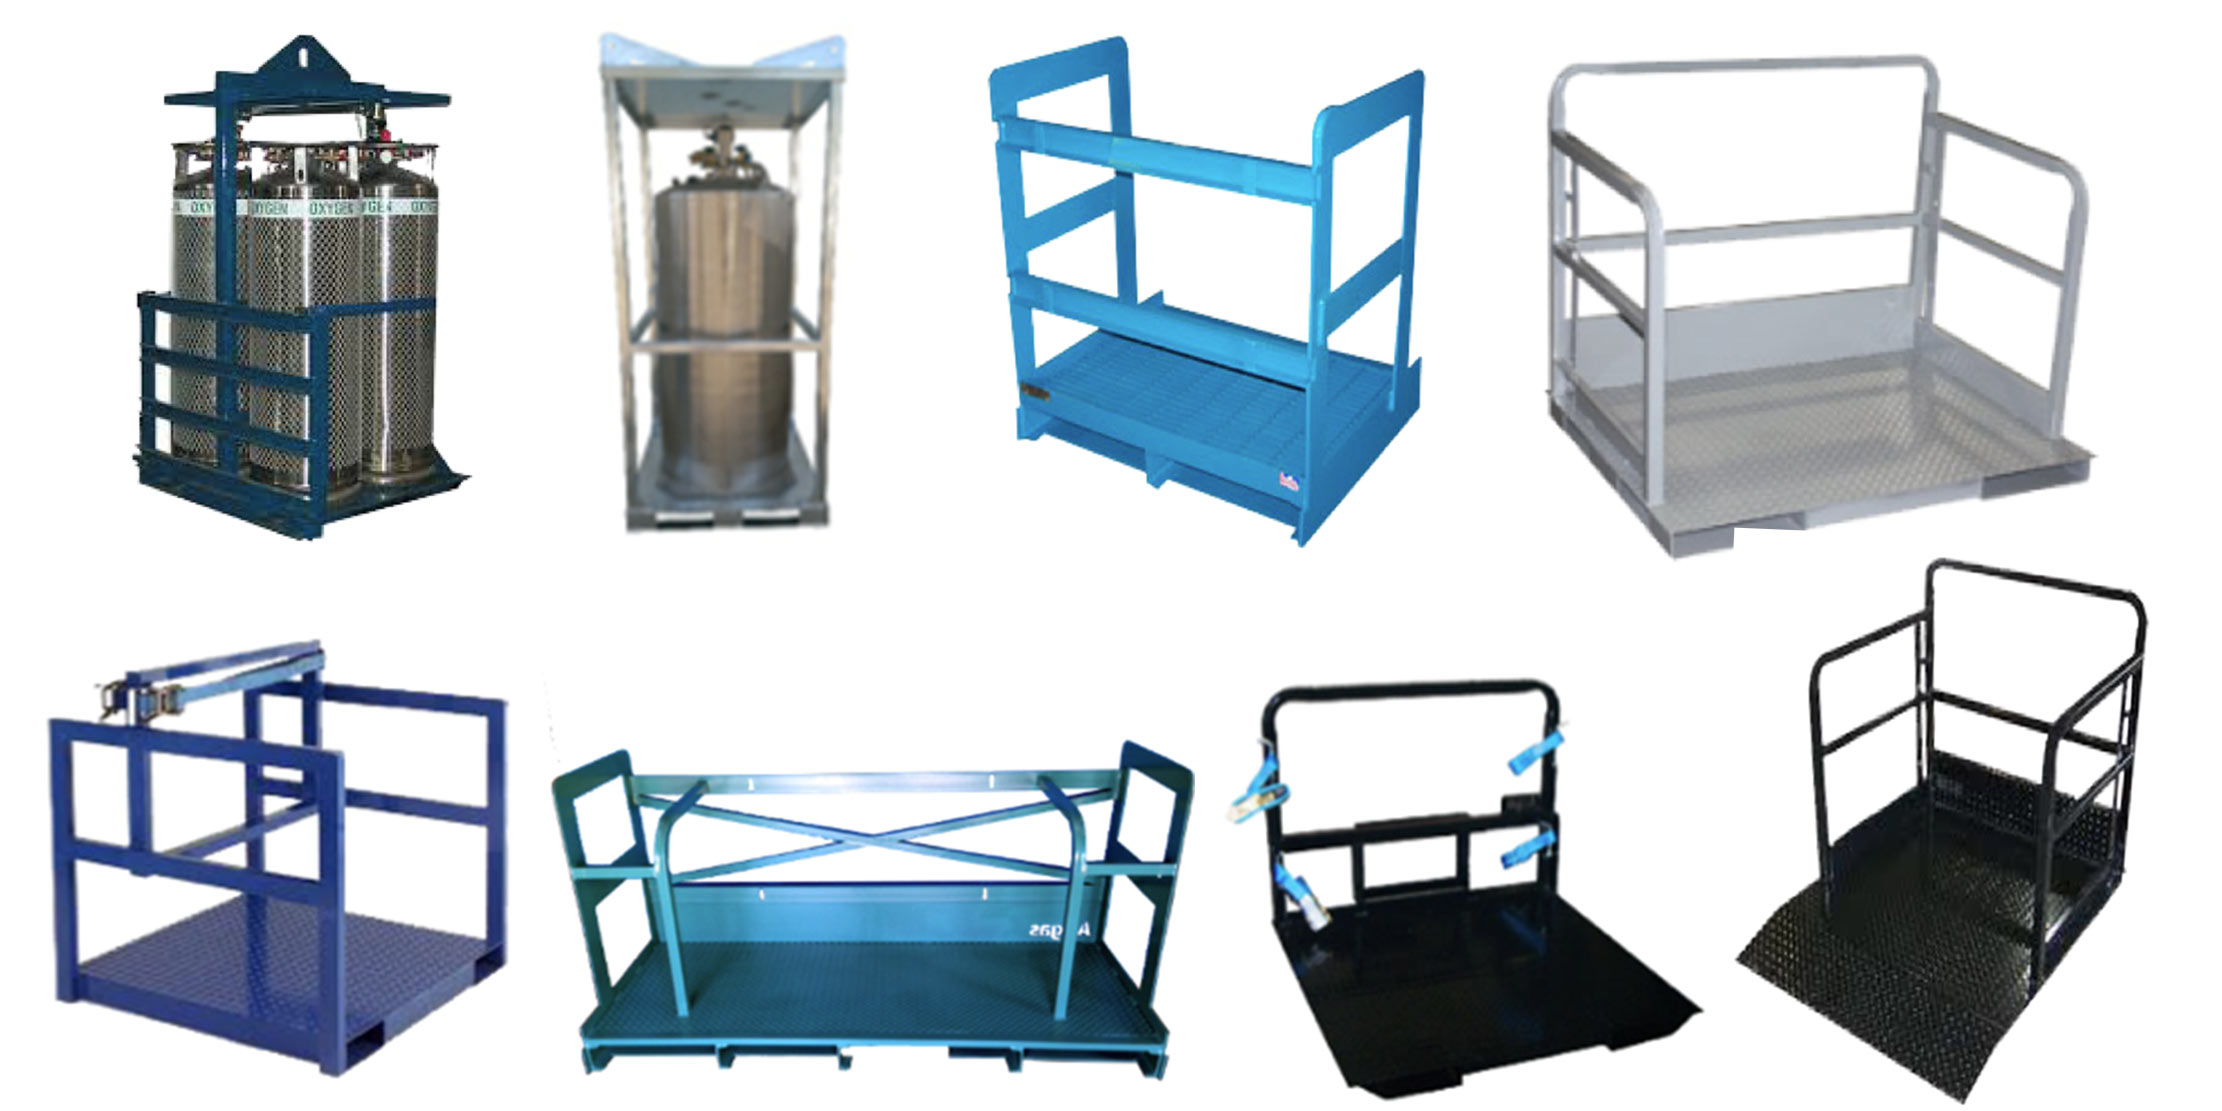 Steel Pallets for High pressure gas bottles